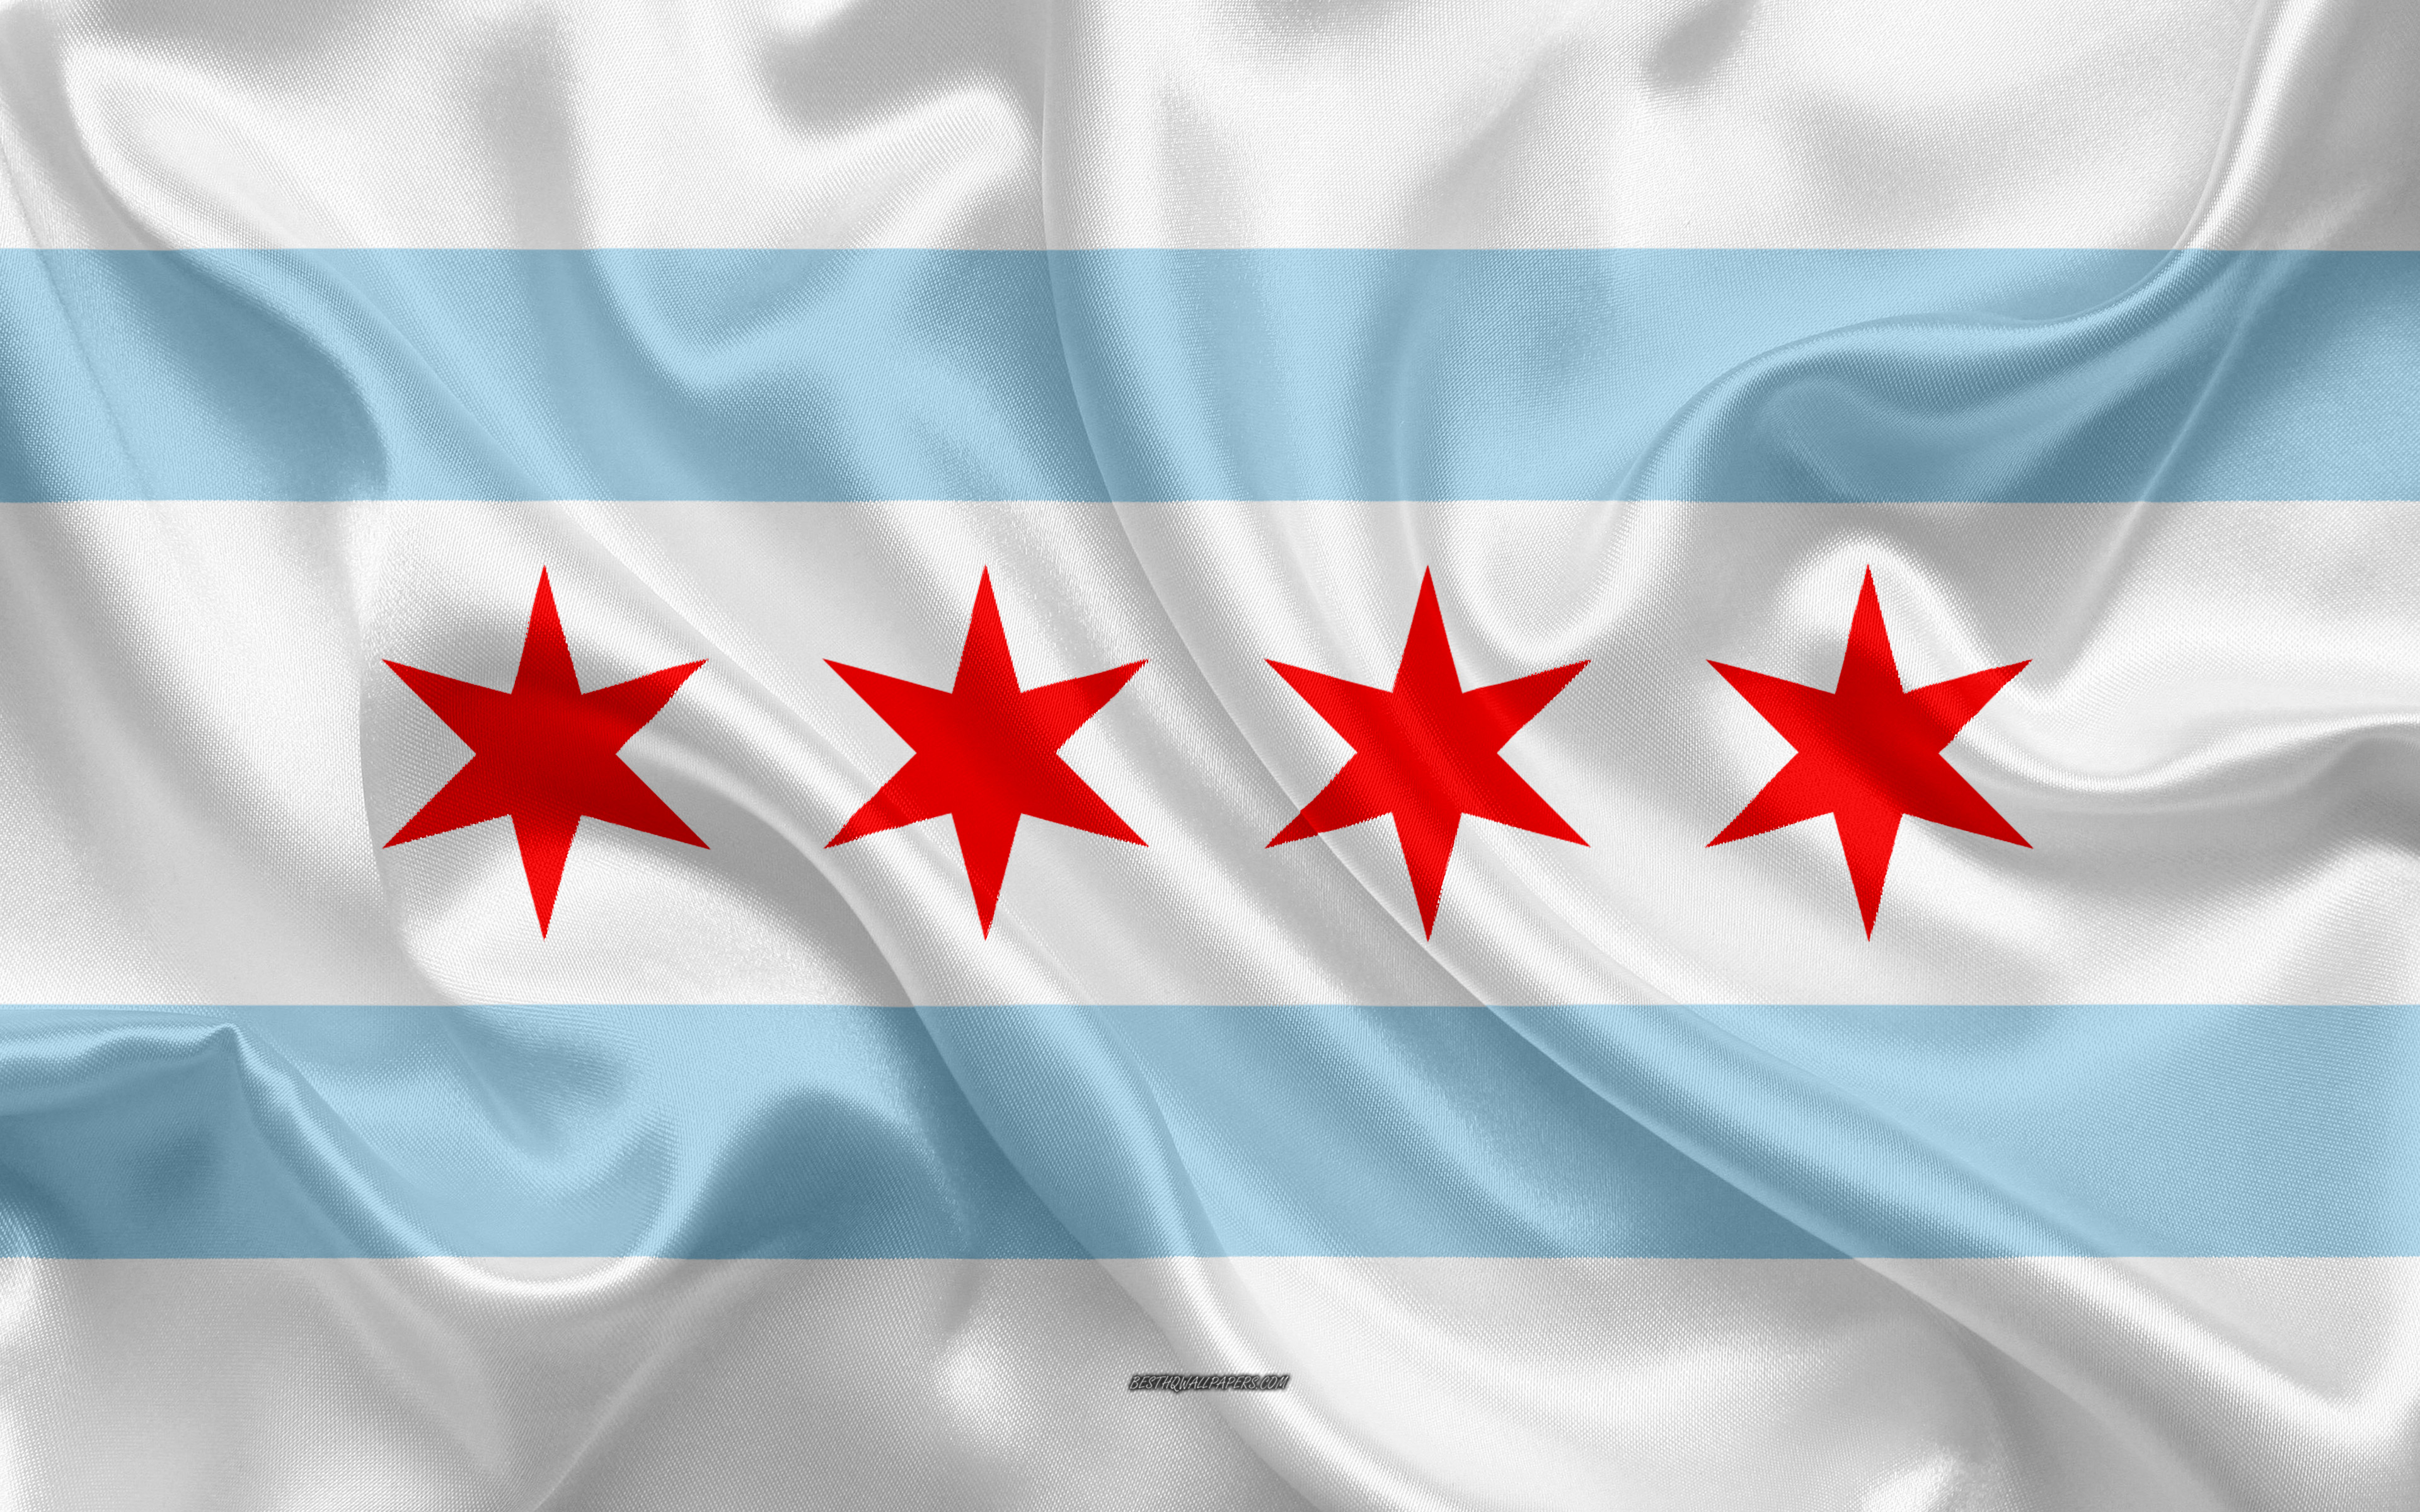 Download wallpapers Flag of Chicago 4k silk texture american 3840x2400